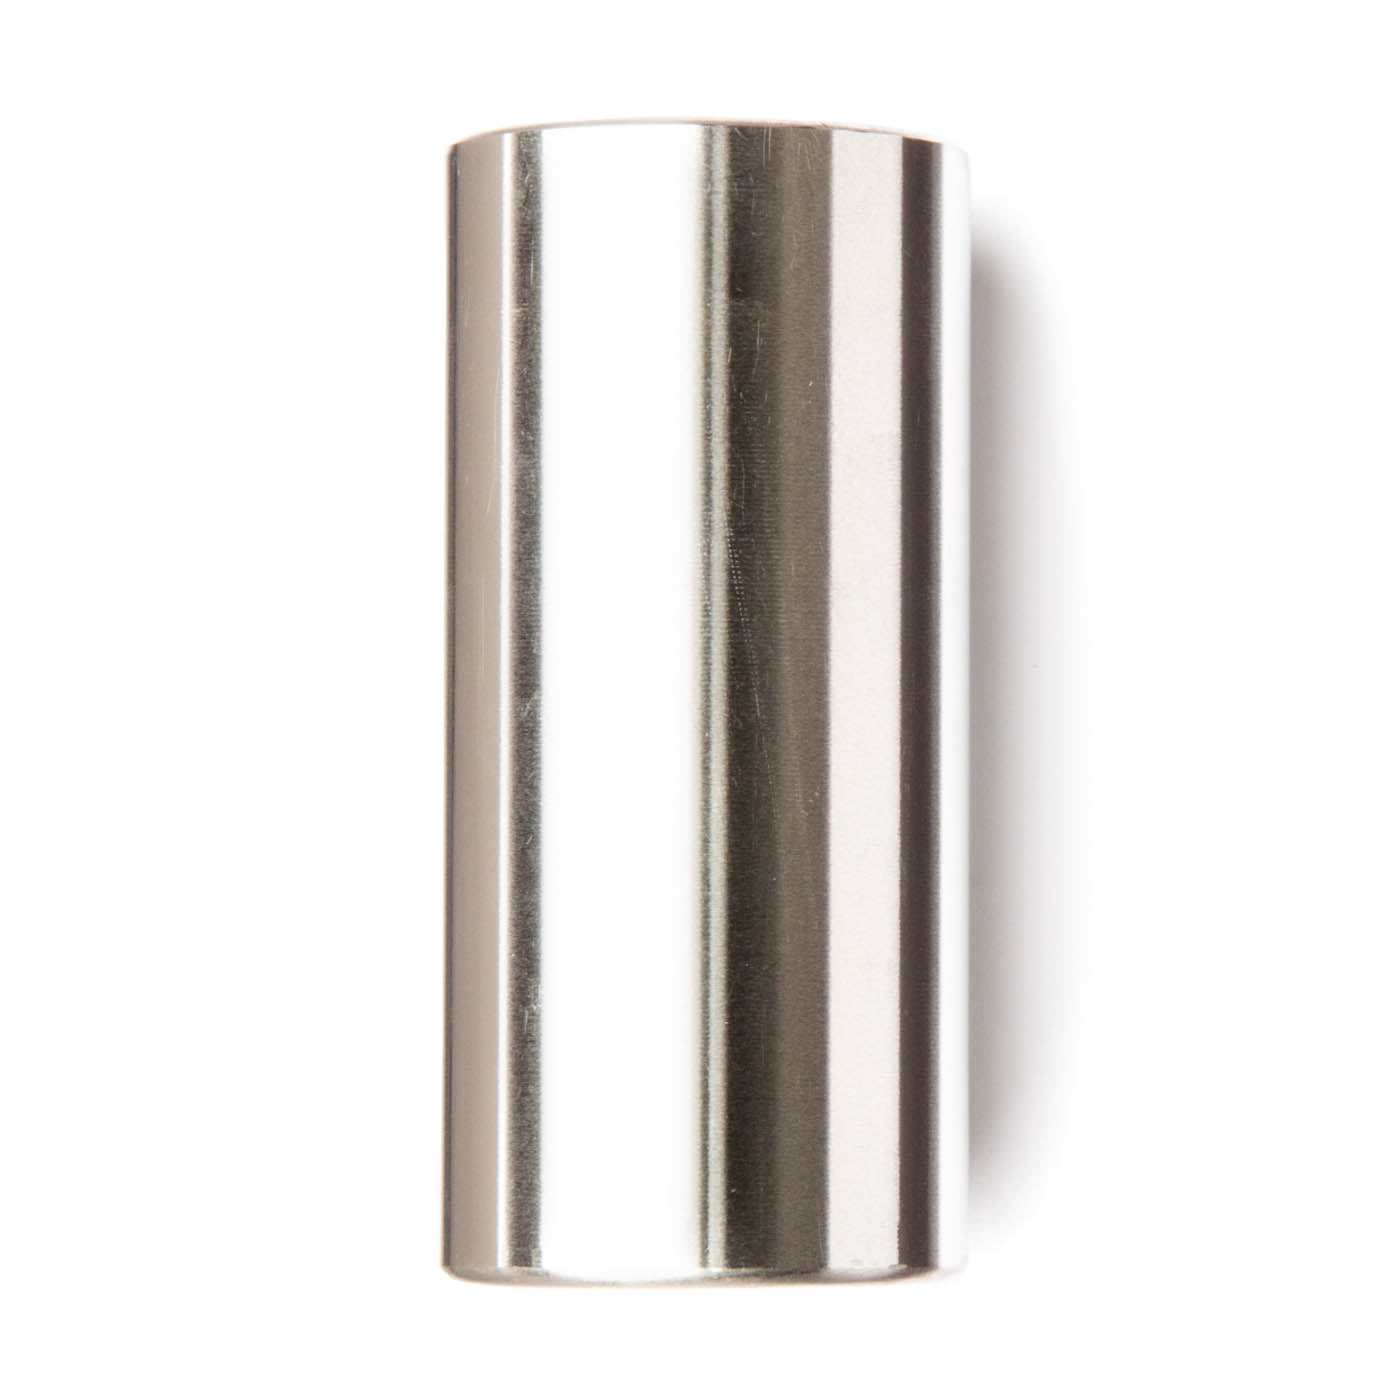 Jim Dunlop XL Chromed Steel Slide 51mm